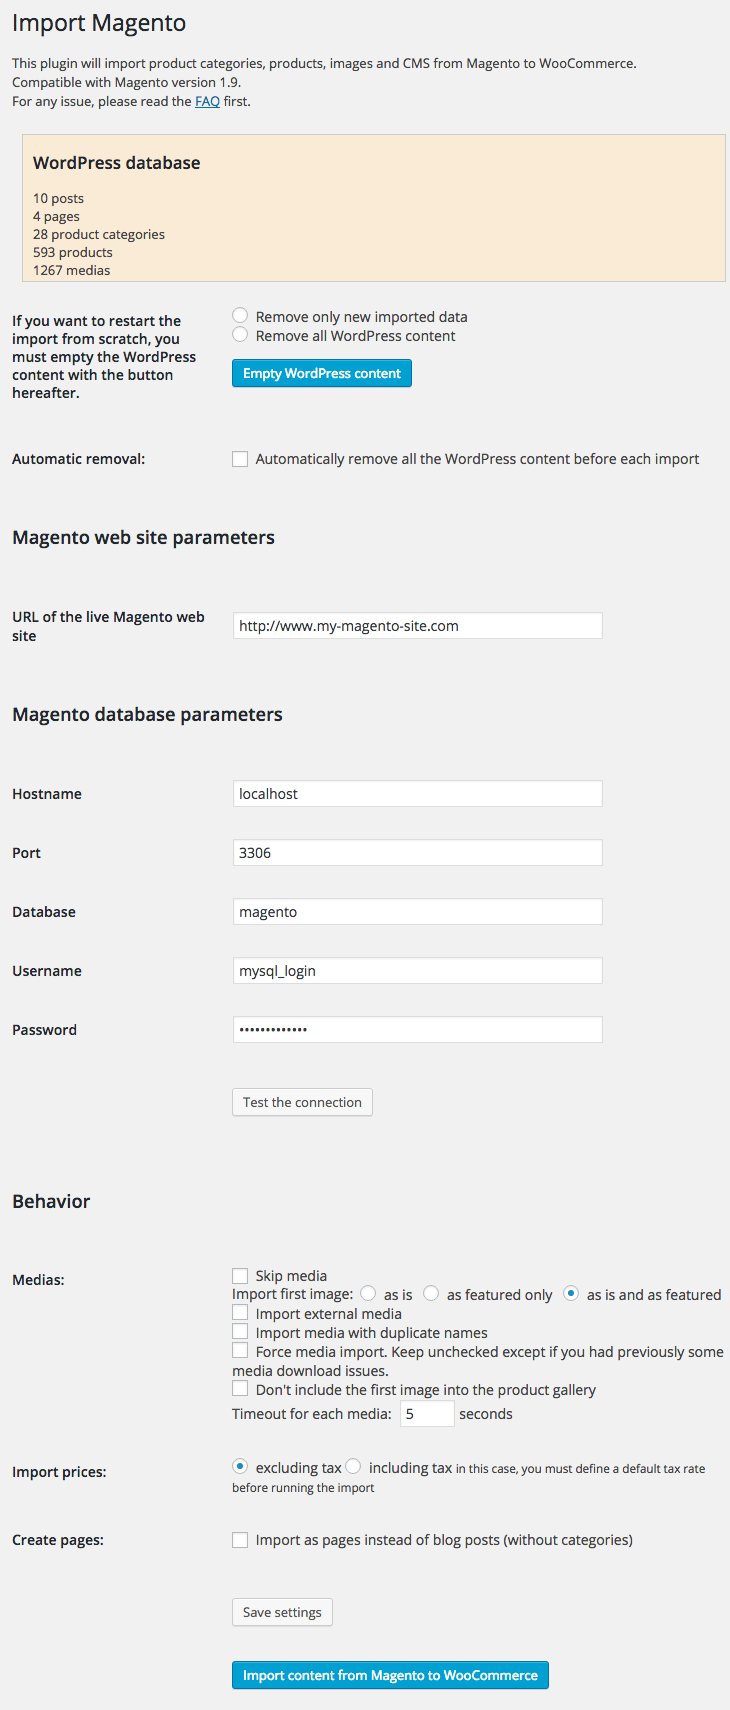 fg-magento-to-woocommerce screenshot 1